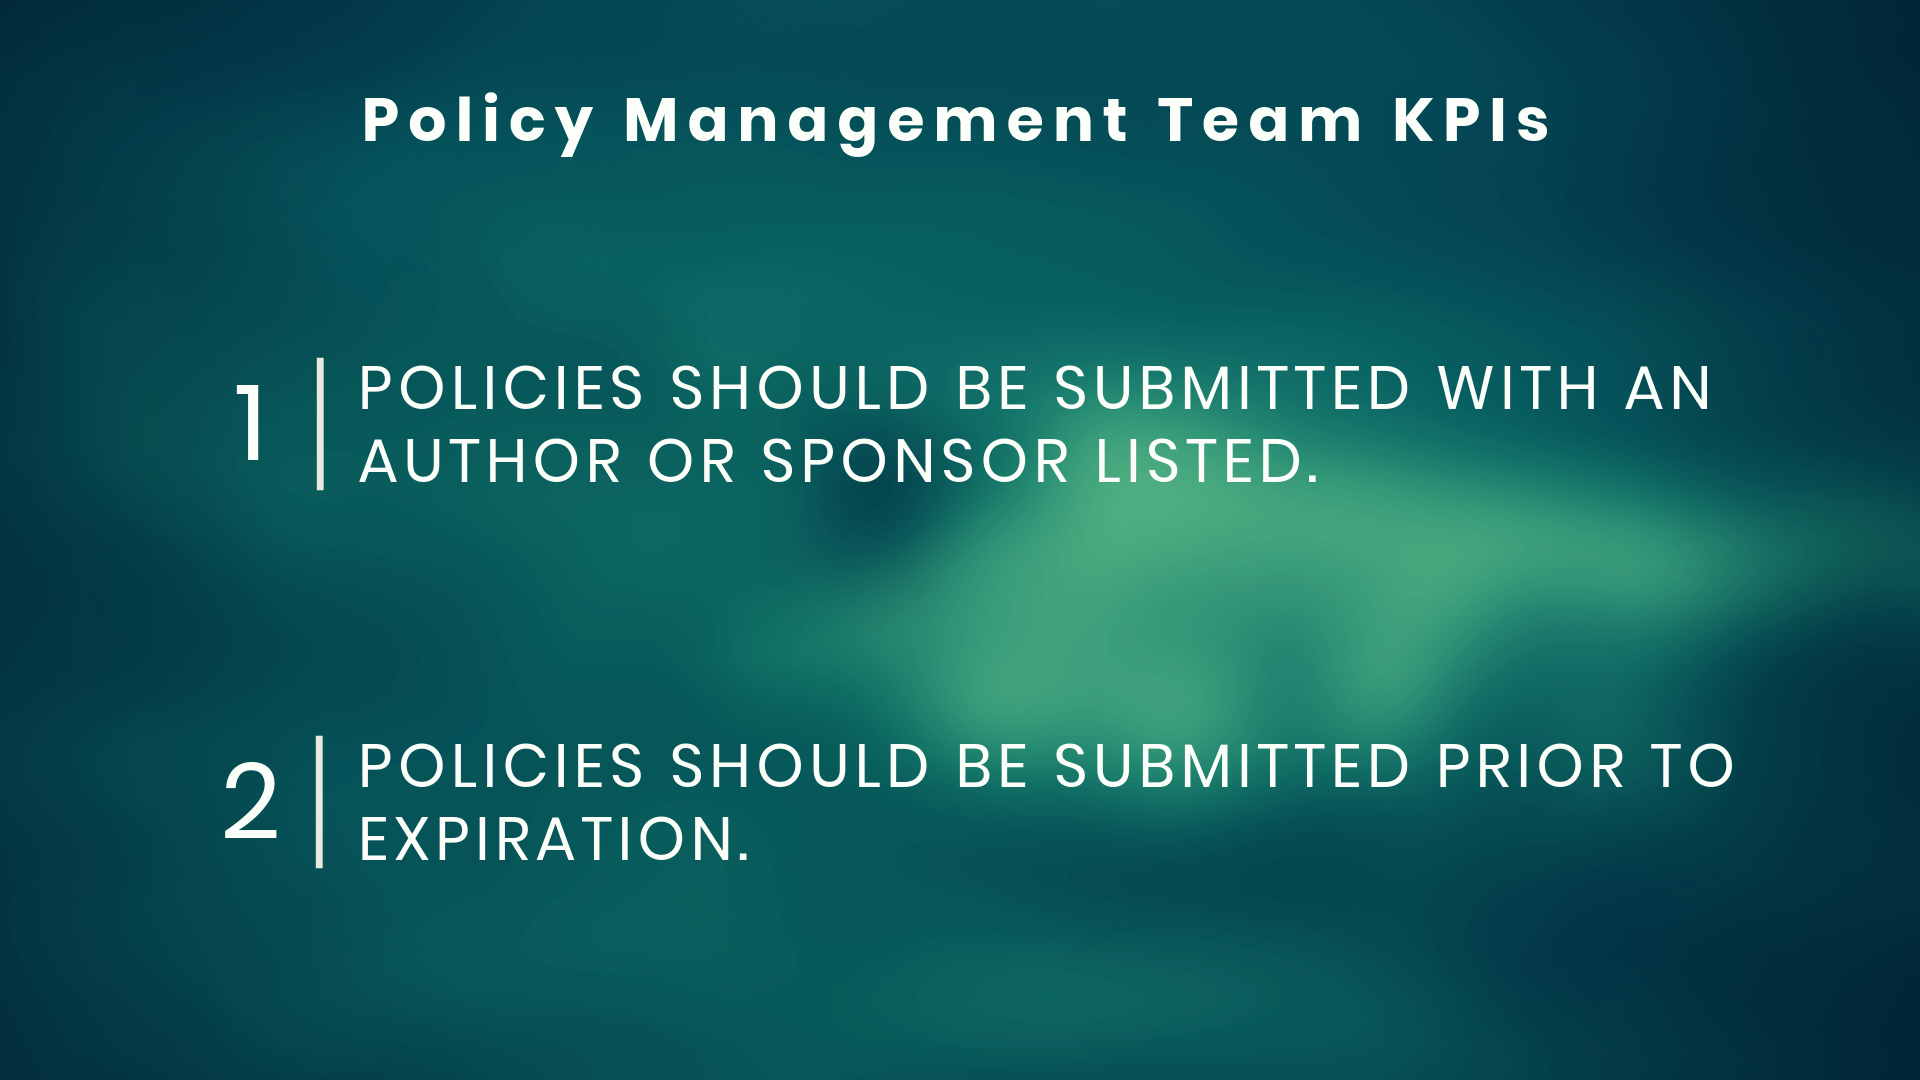 PolicyManagementKPIs_082019.png